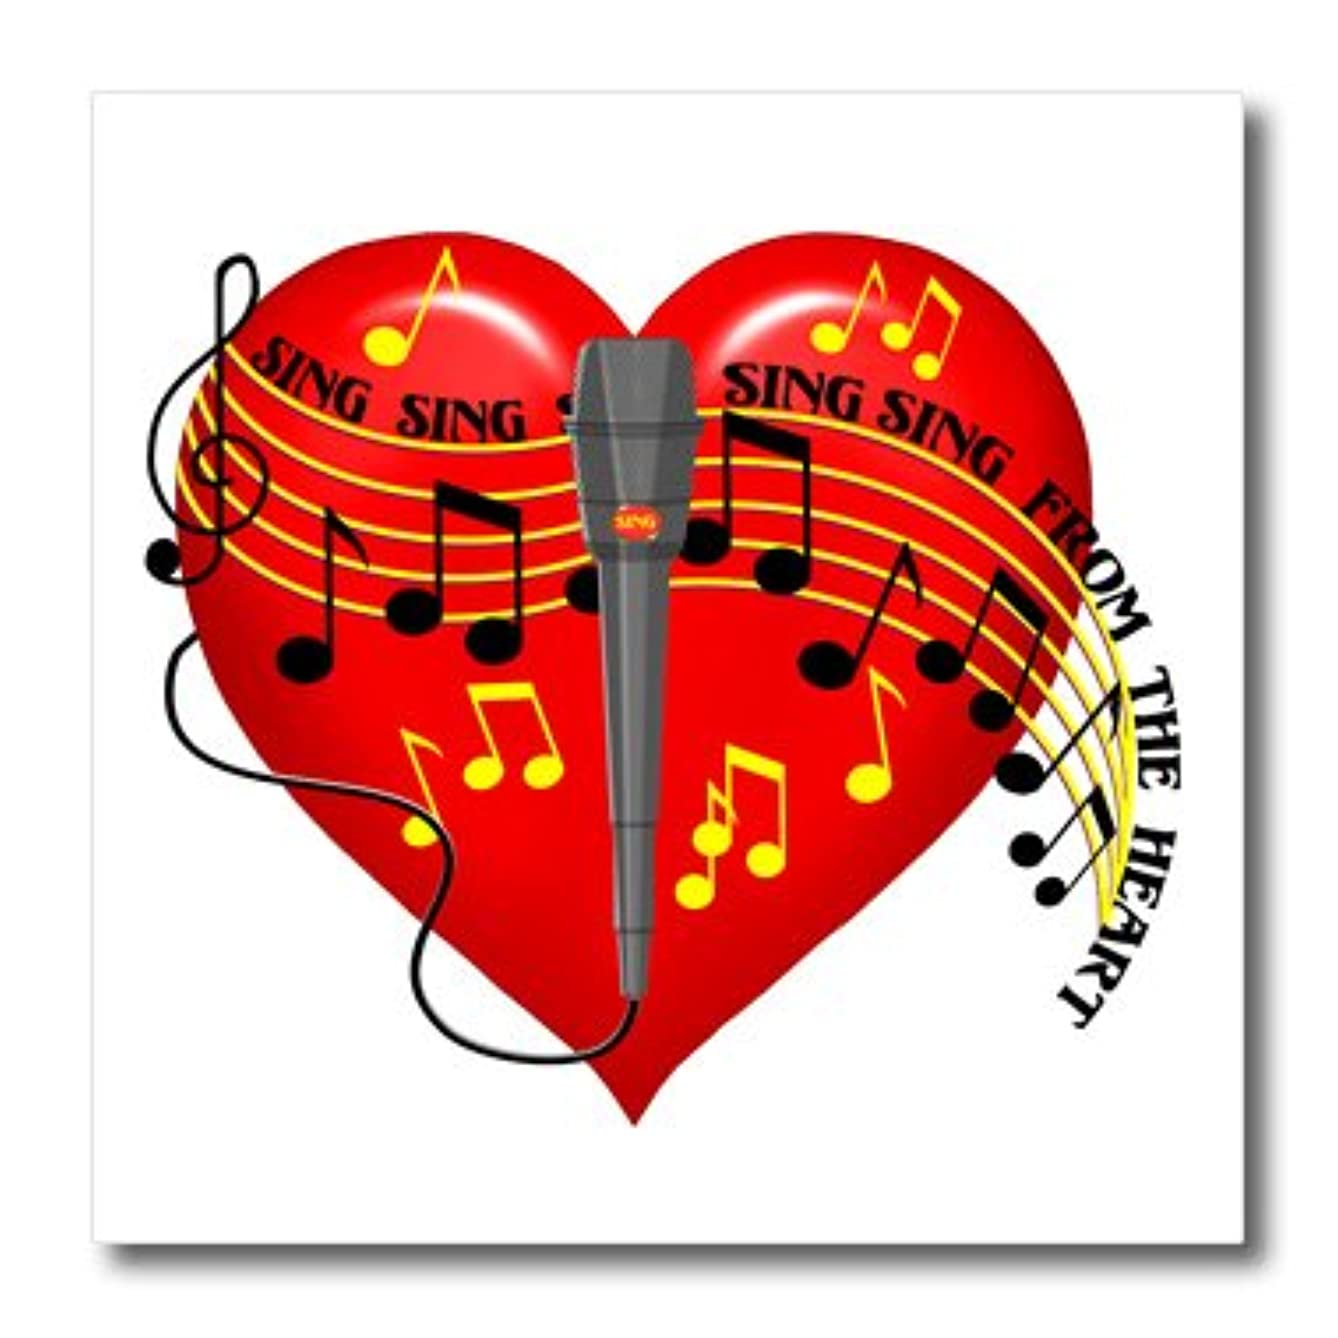 3dRose Large red, Musical Notes, Microphone, Sing from The Heart Text, Light Background-Iron On Heat Transfer, 8 by 8-inch, for White Material (ht_11618_1)